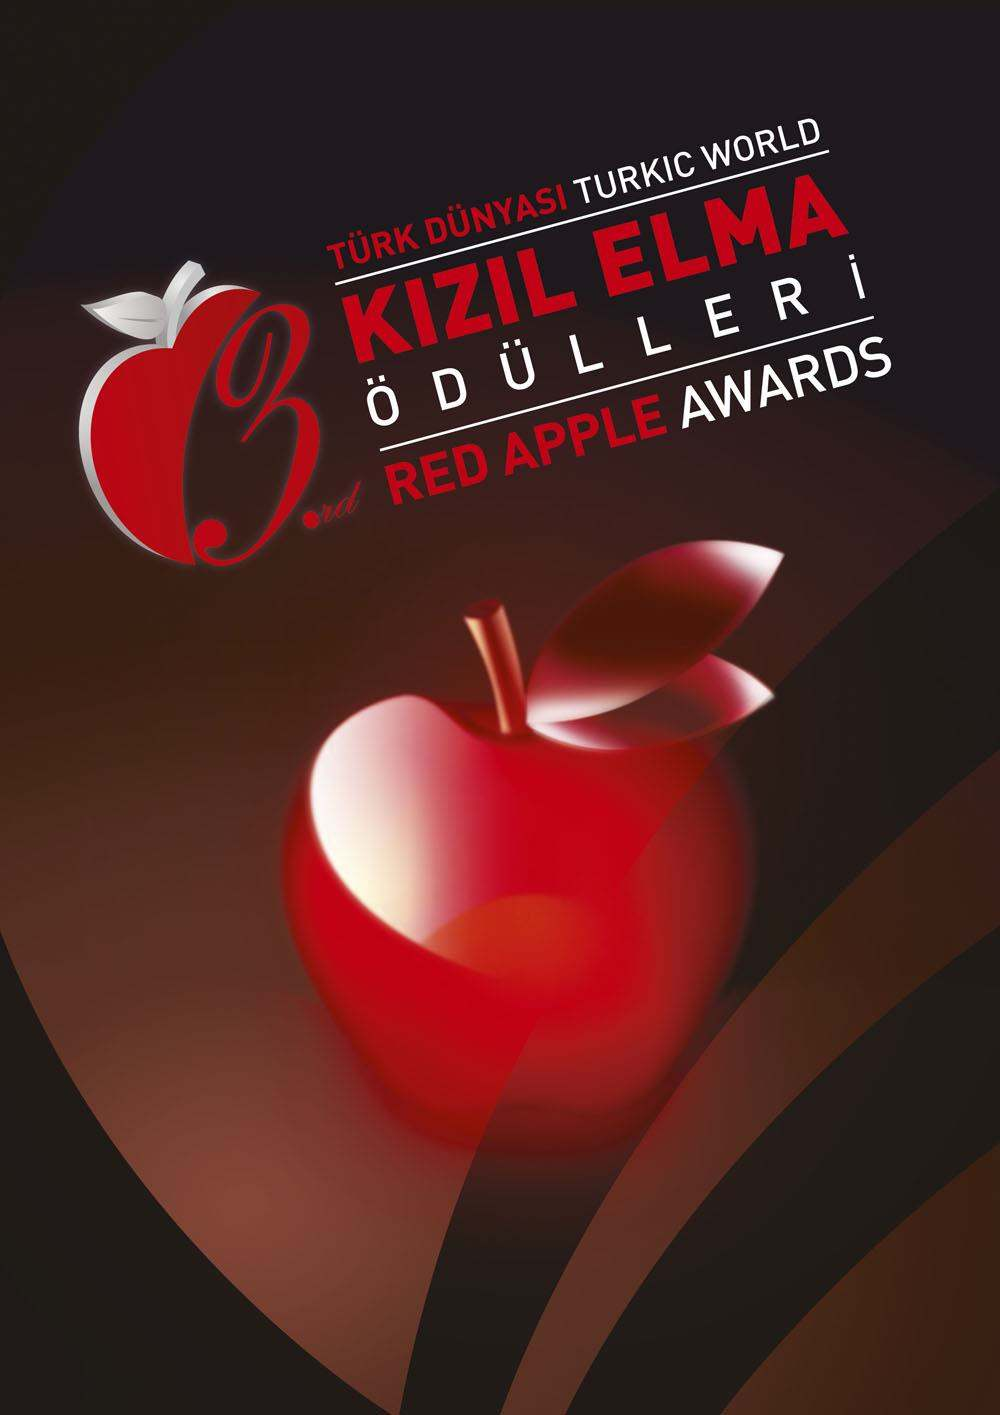 Turkic World Red Apple Awards Presentation 3